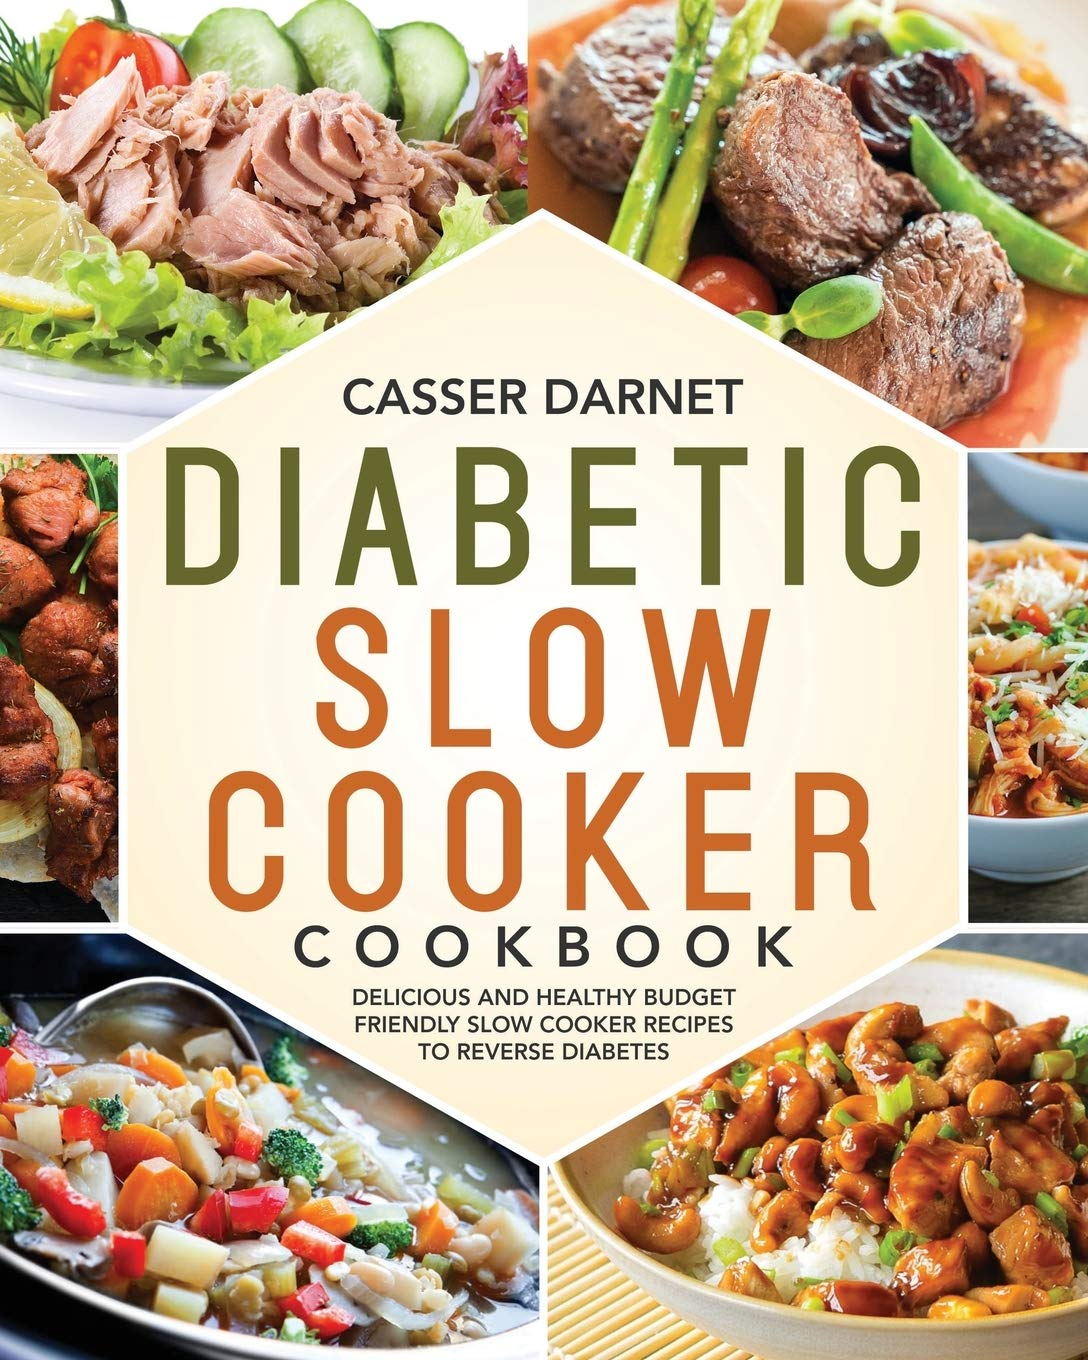 Diabetic Slow Cooker Cookbook: Delicious and Healthy Budget Friendly Slow Cooker Recipes to Reverse Diabetes 1